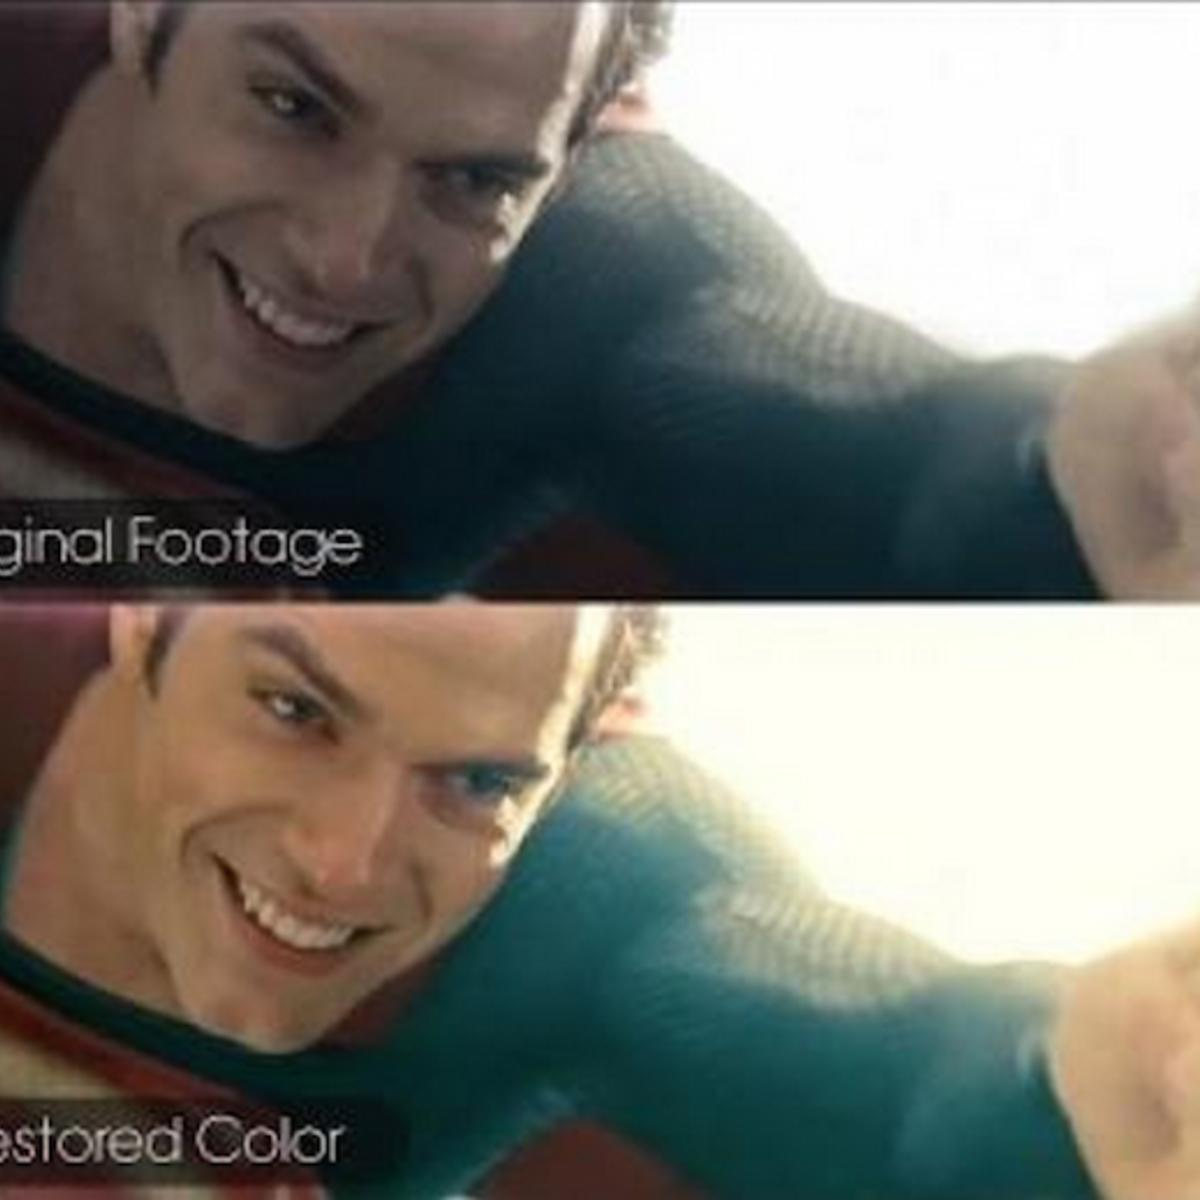 ManofSteelRestored.png